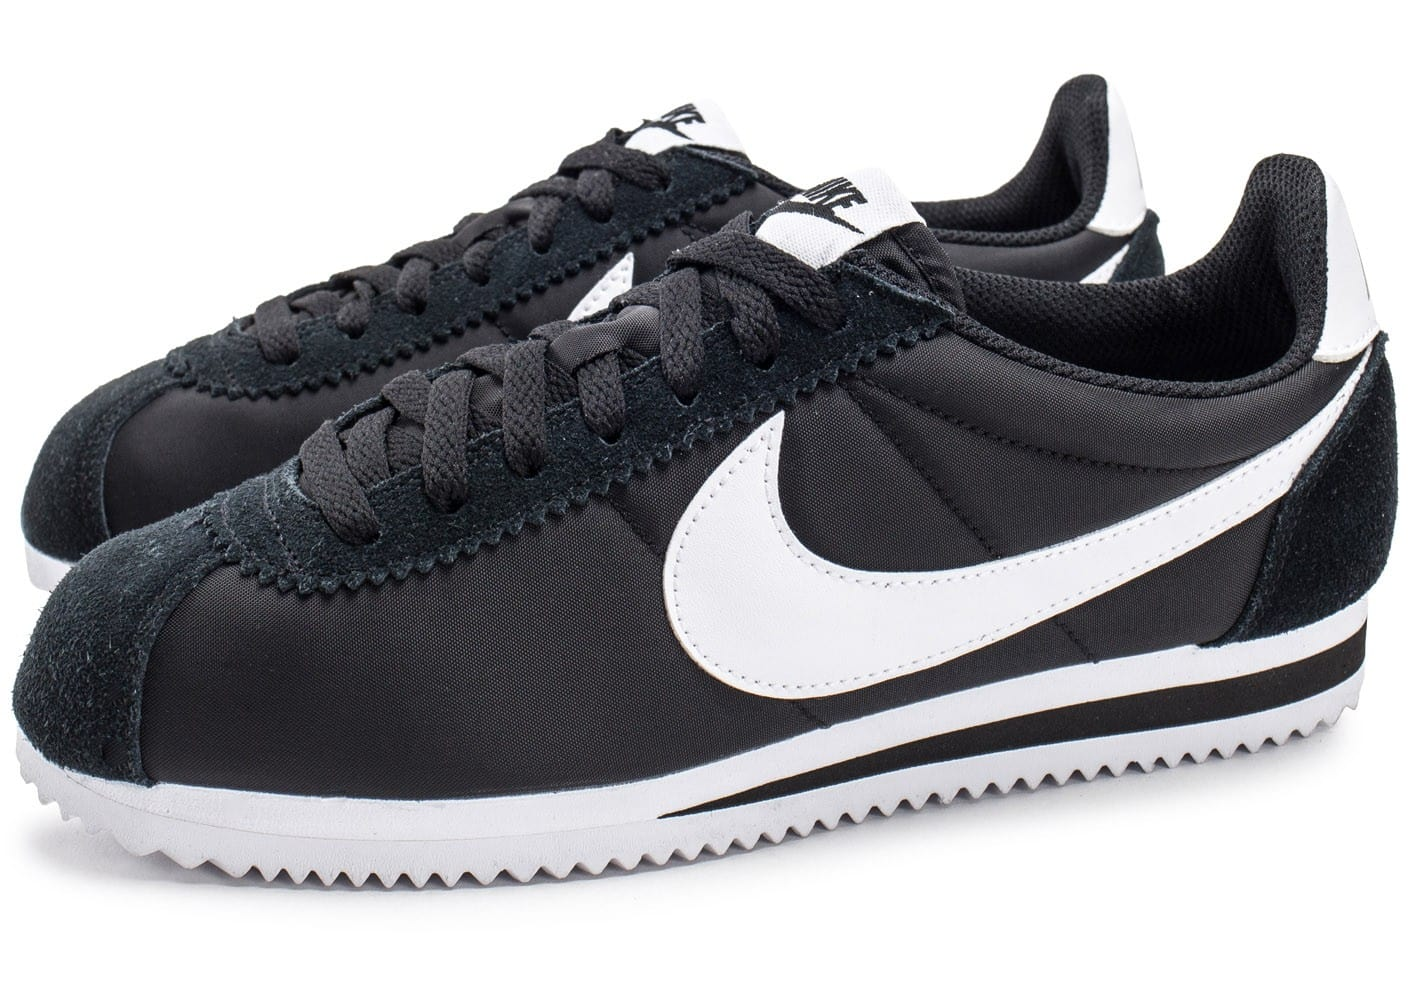 finest selection 8cbe6 9e2ec ... nike 6c8ebe2 cortez nylon homme PTK ONGw7so c4ebeef8 air 53938e2 max  ...